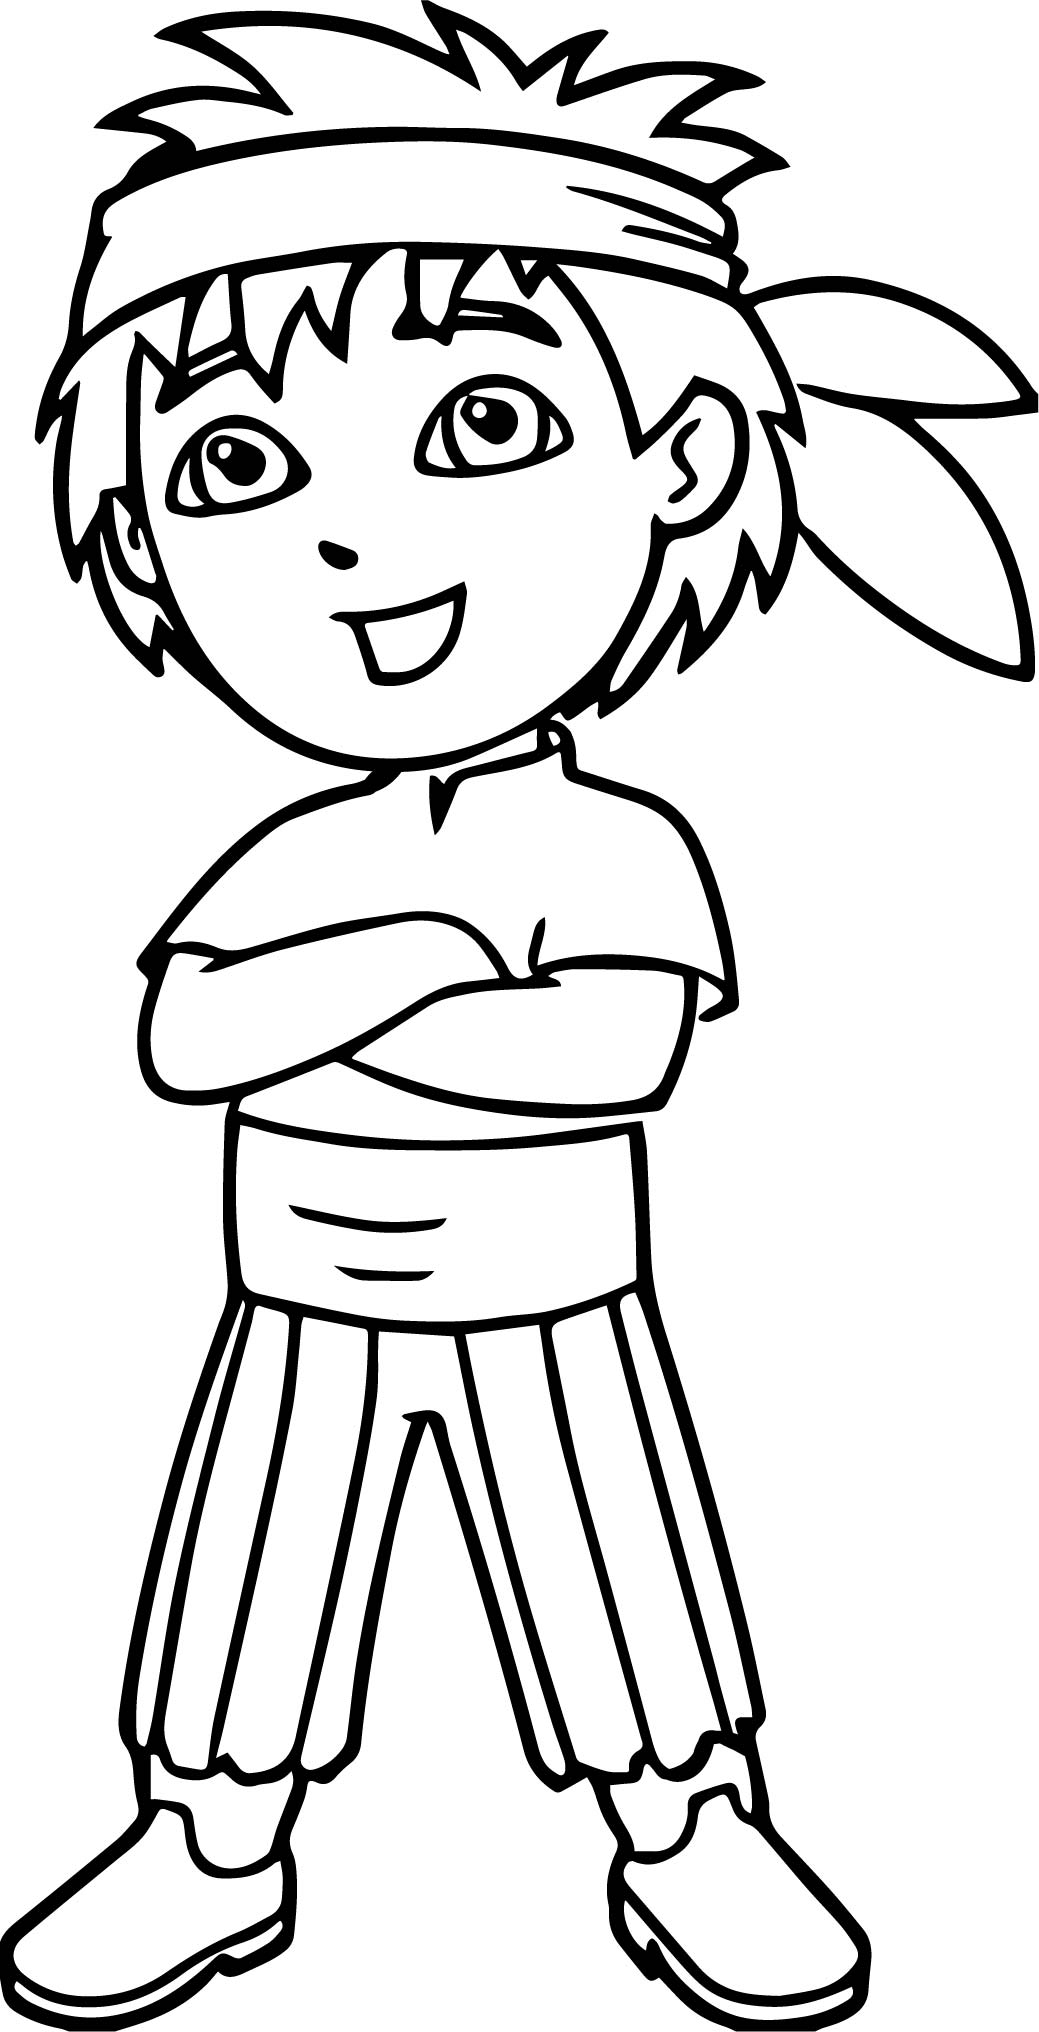 Kid Dora The Explorer Man Cartoon Coloring Page